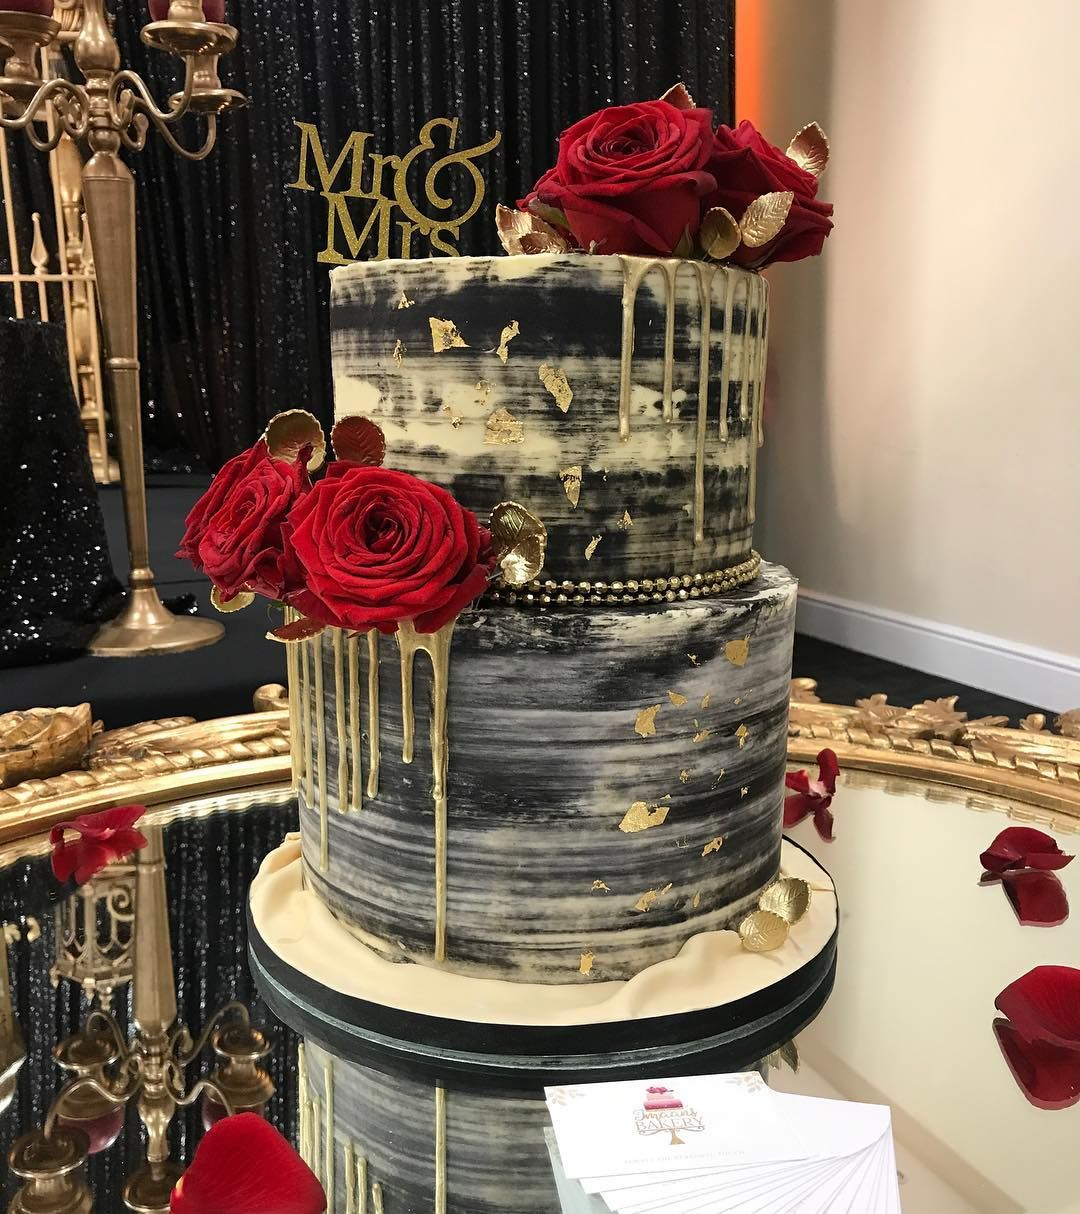 Pin by Wedding cakes on Wedding cakes | Pinterest | Edible gold leaf ...